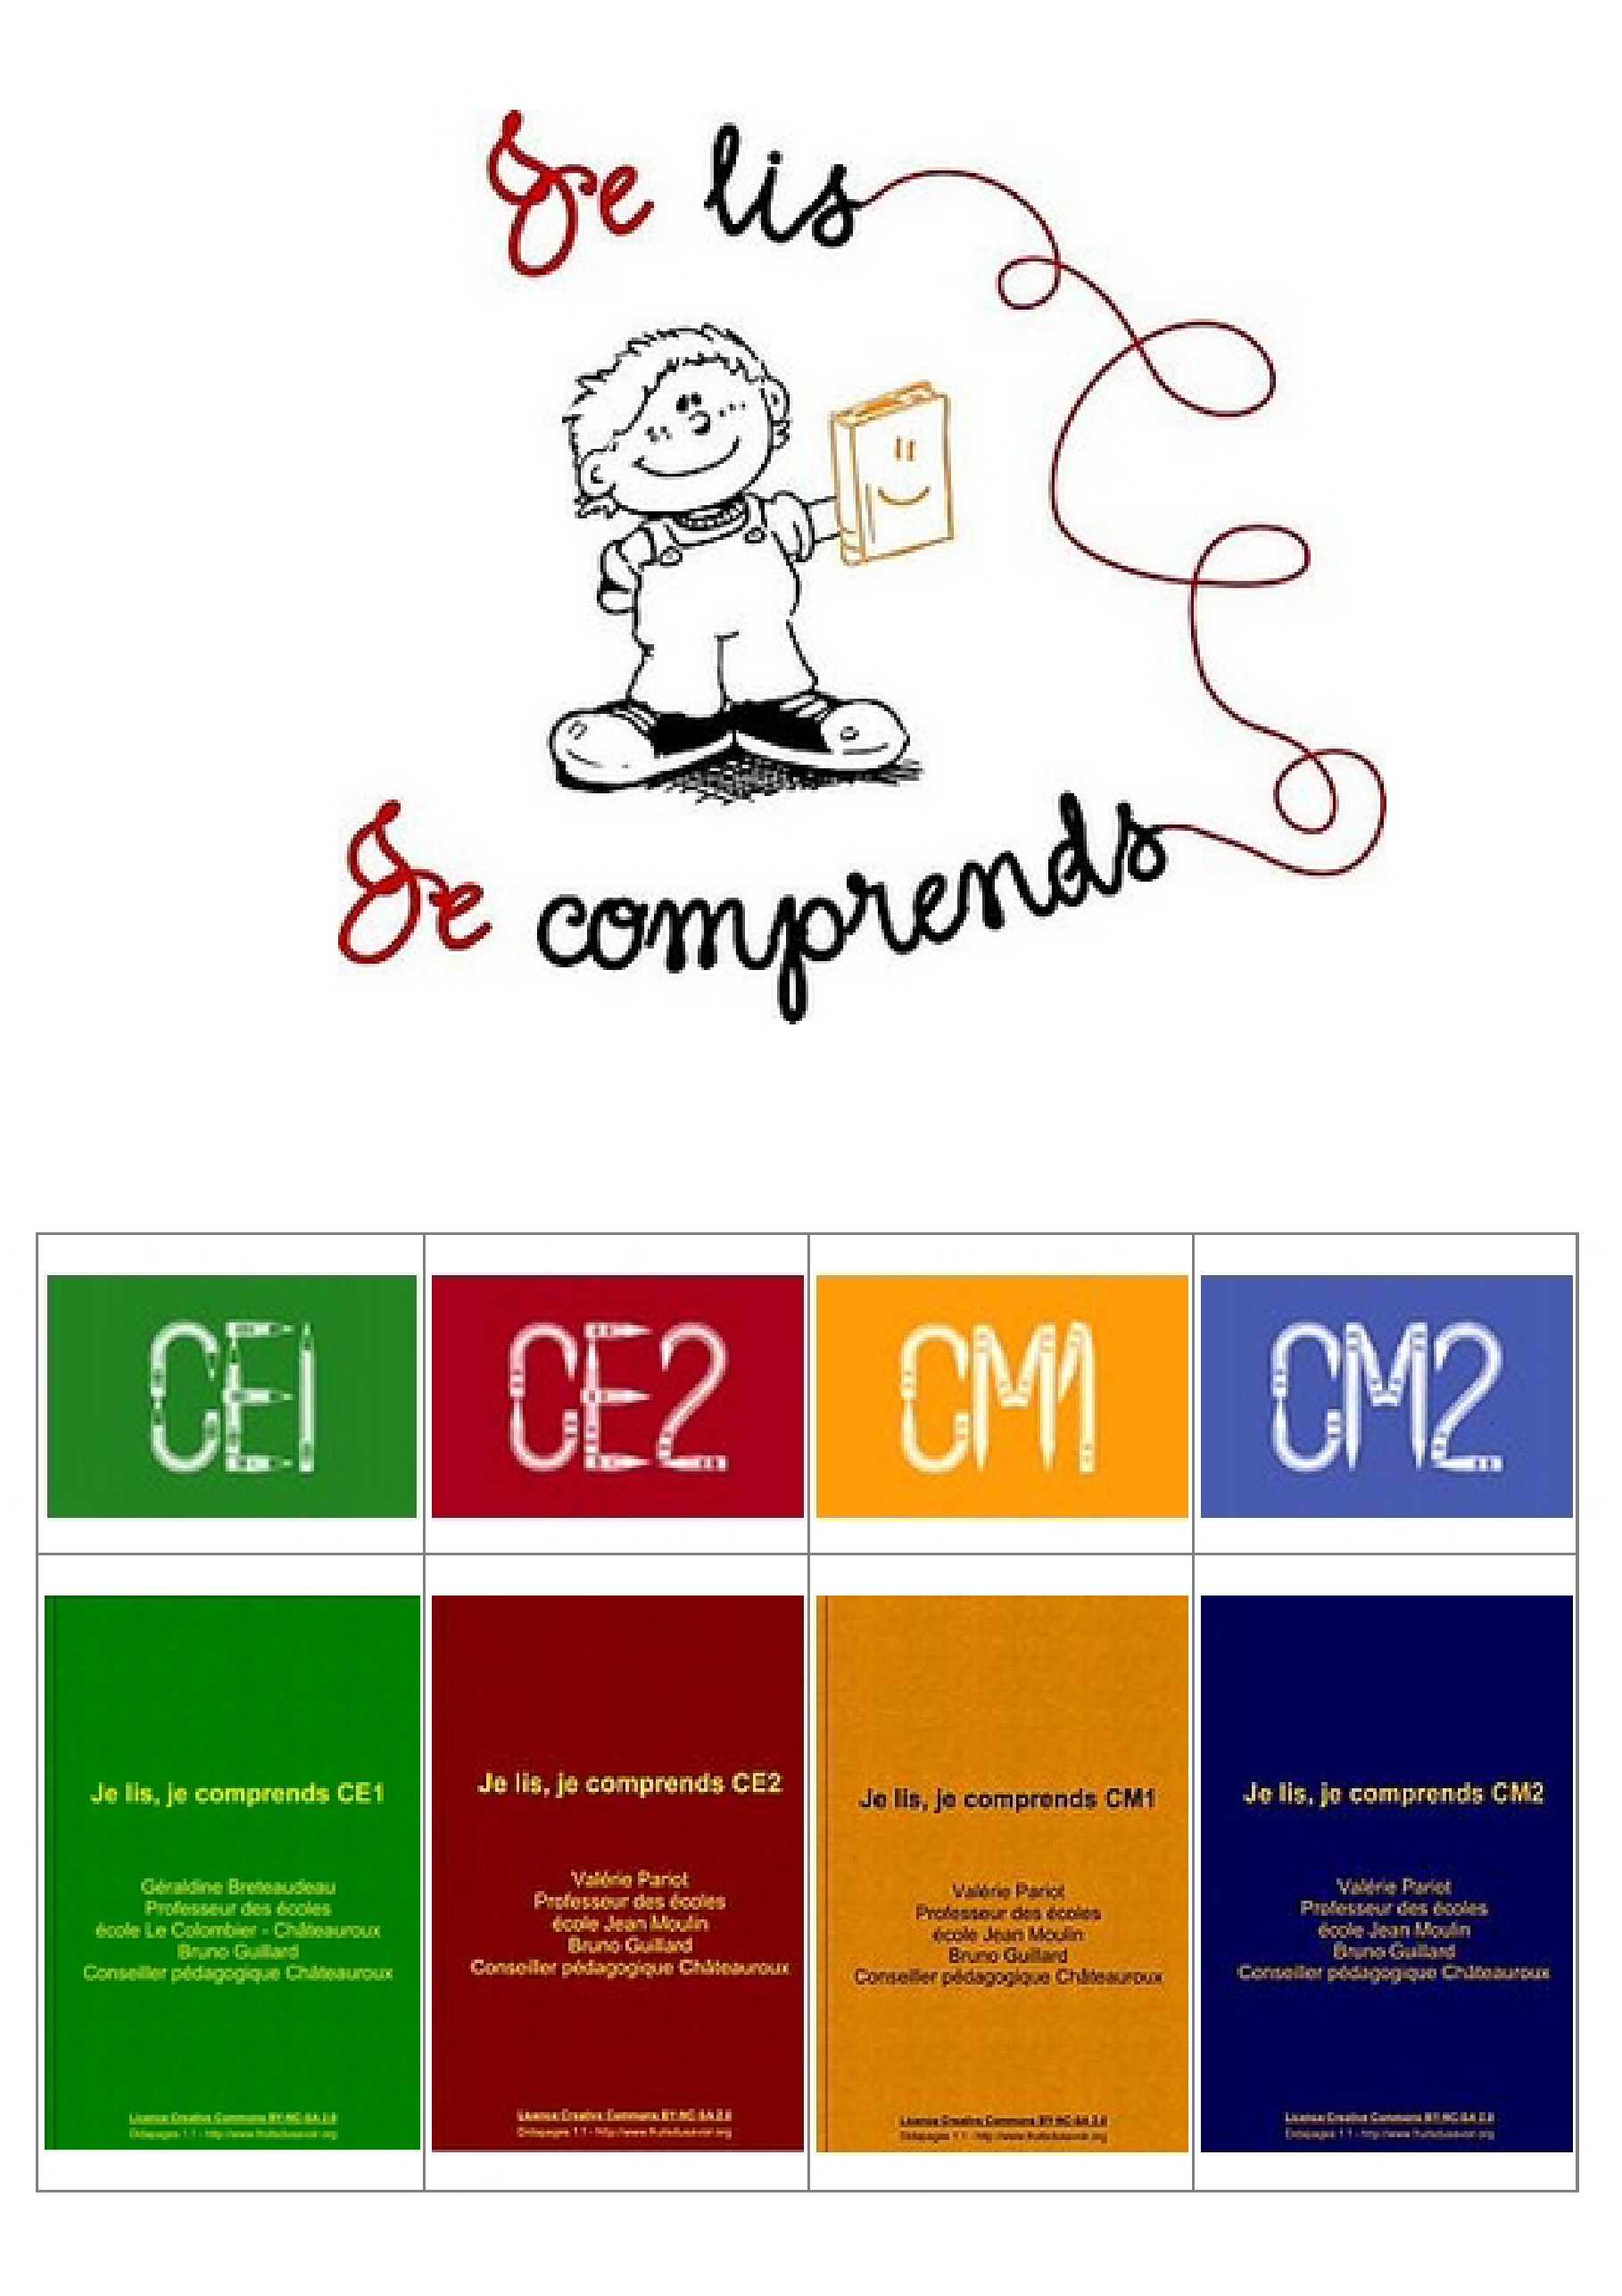 Je Lis Je Comprends Cm : comprends, Comprends, Comprends,, Lecture